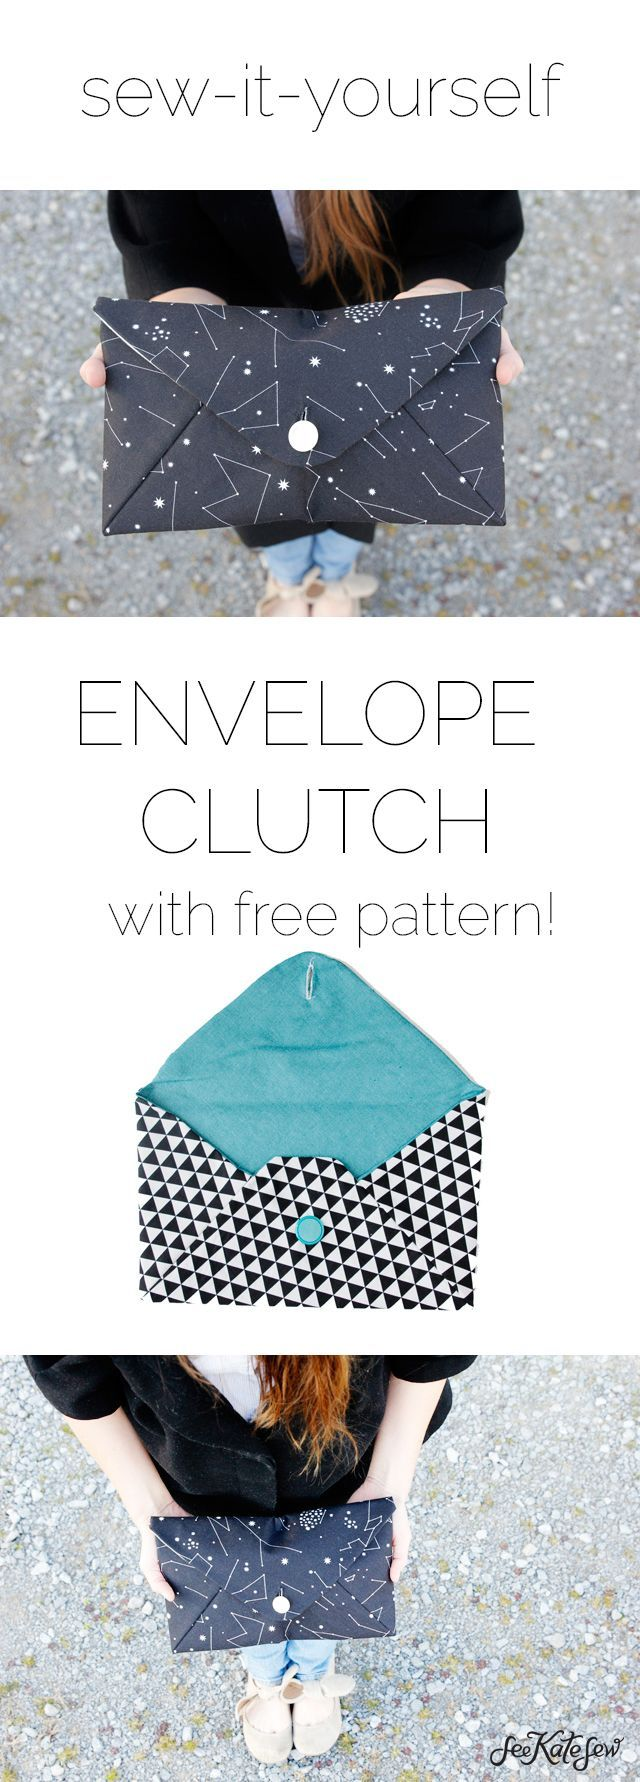 Envelope Clutch Pattern (free!) | See Kate Sew                                                                                                                                                                                 もっと見る